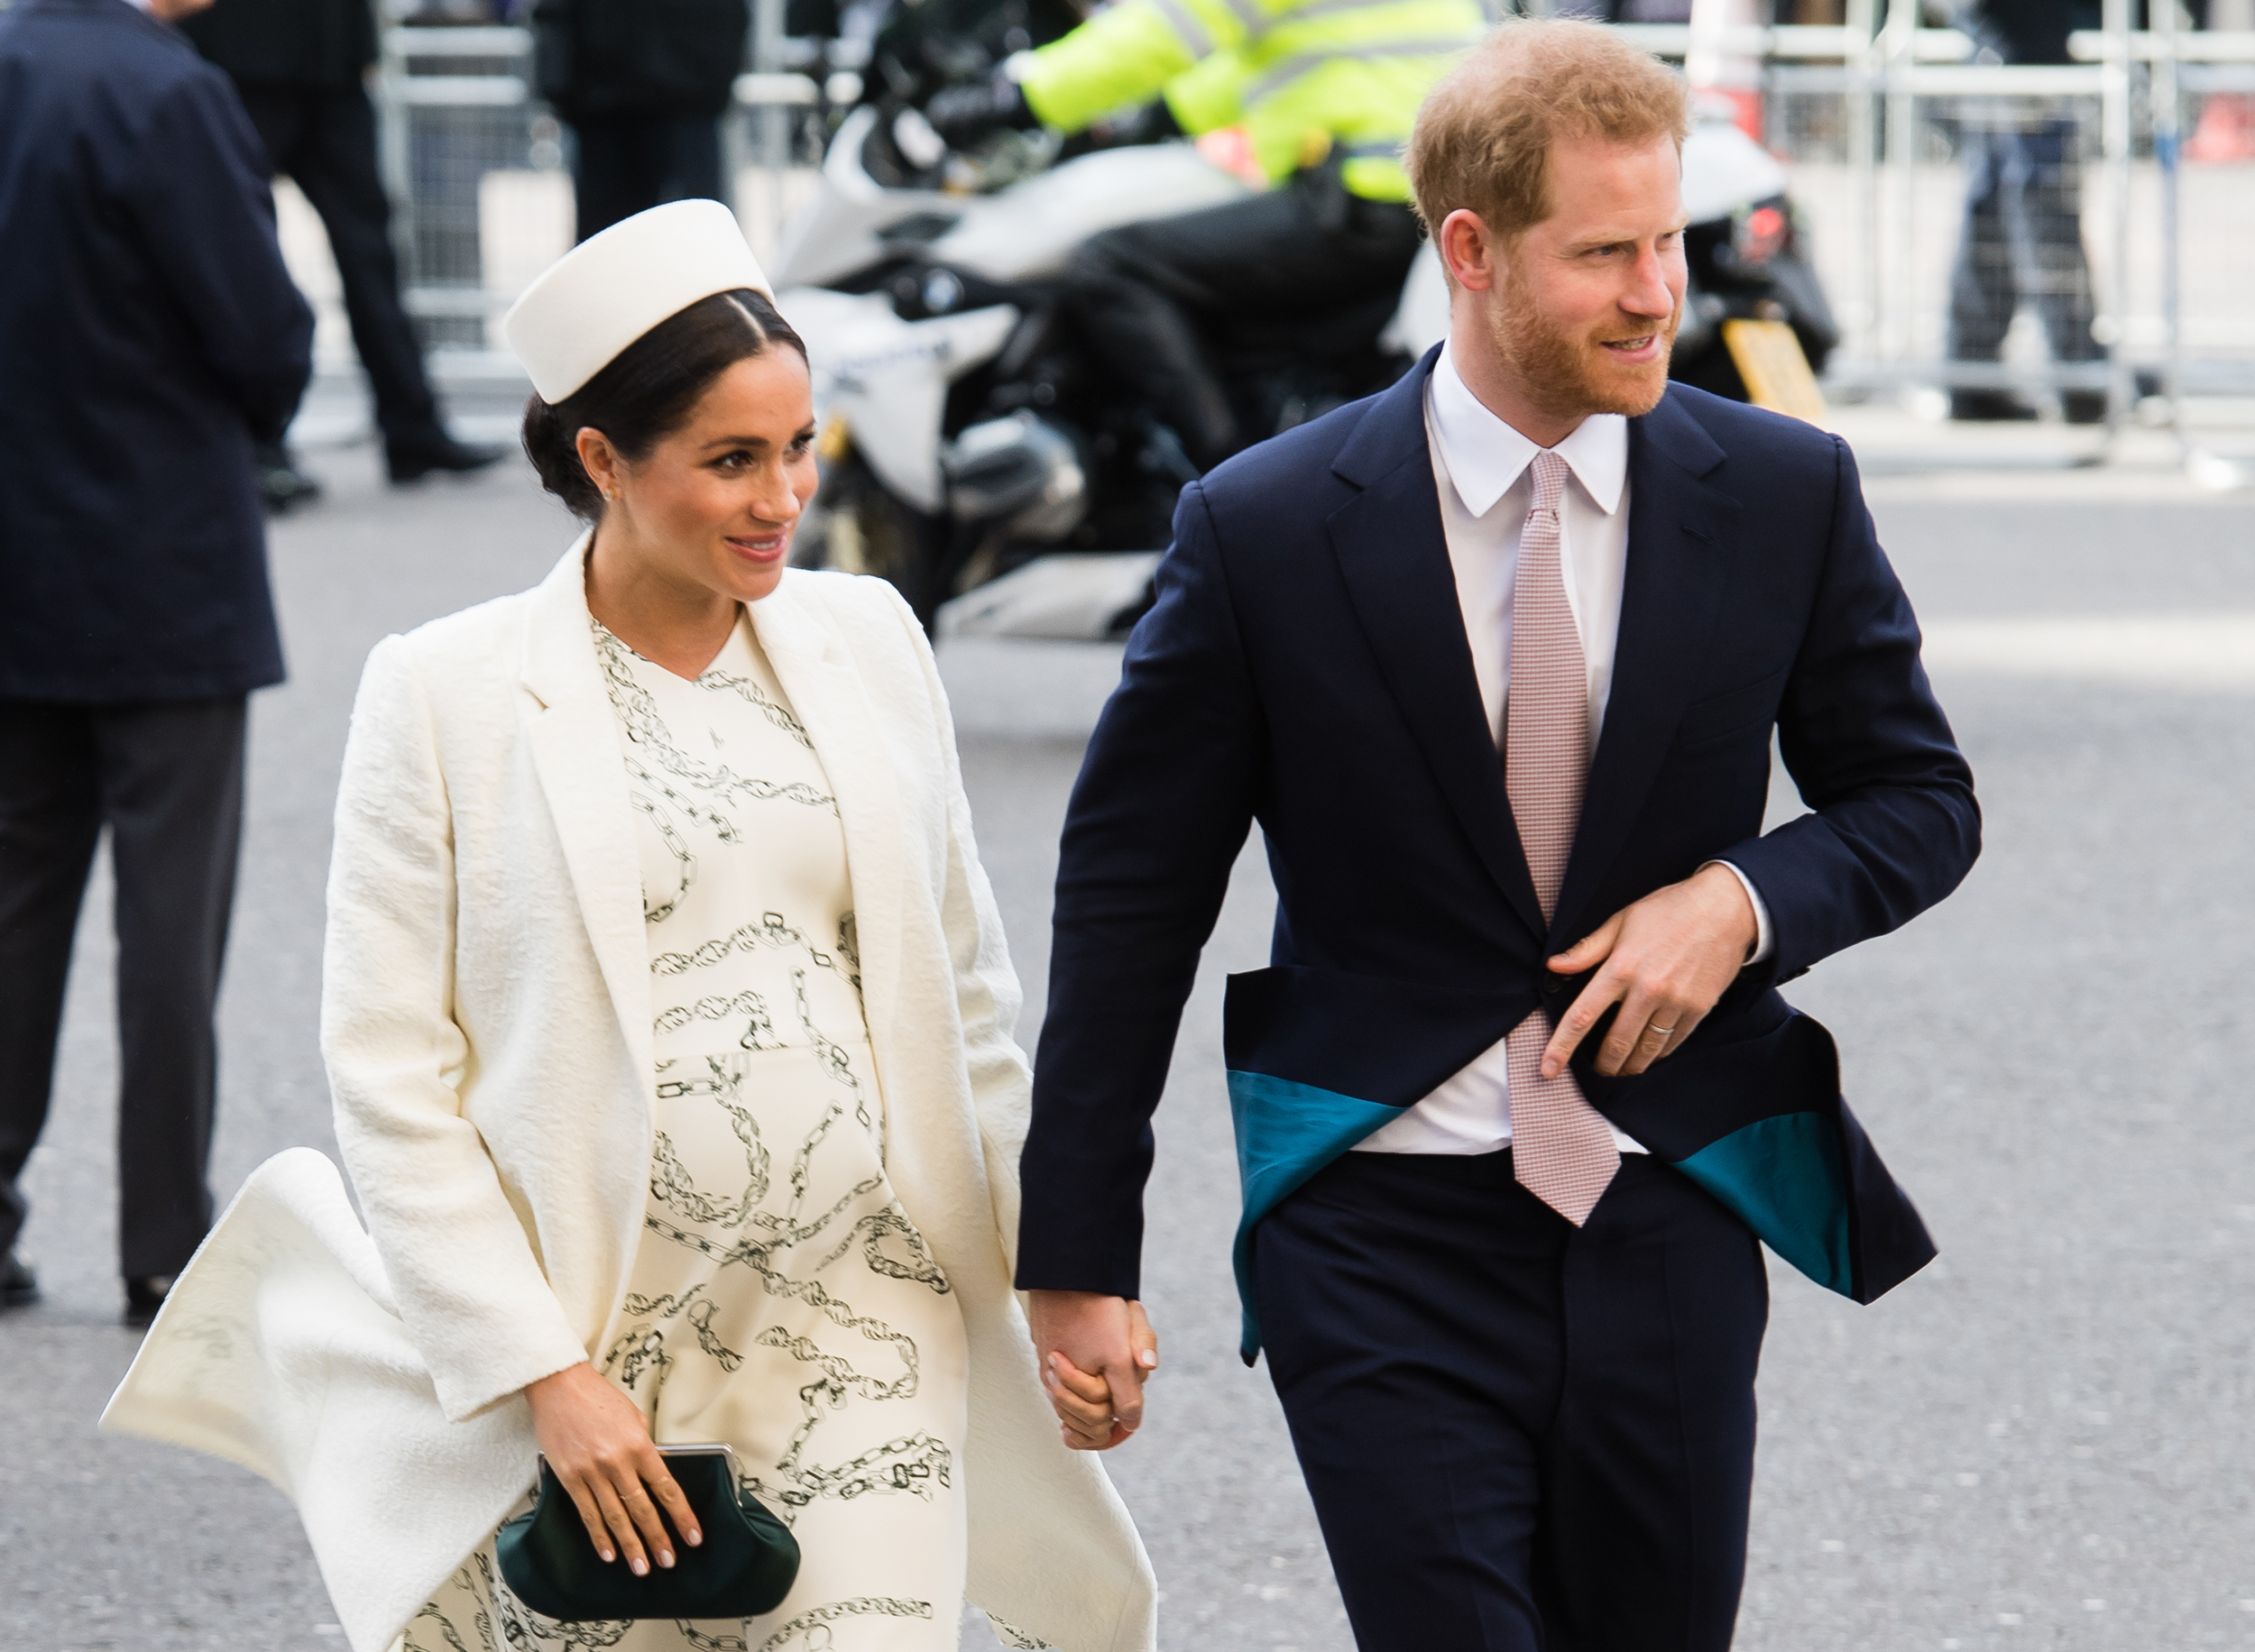 meghan markle and prince harry skip the first royal baby photo but meghan s femininity stays in the spotlight https www nbcnews com think opinion meghan markle prince harry skip royal baby photo meghan s ncna1002611